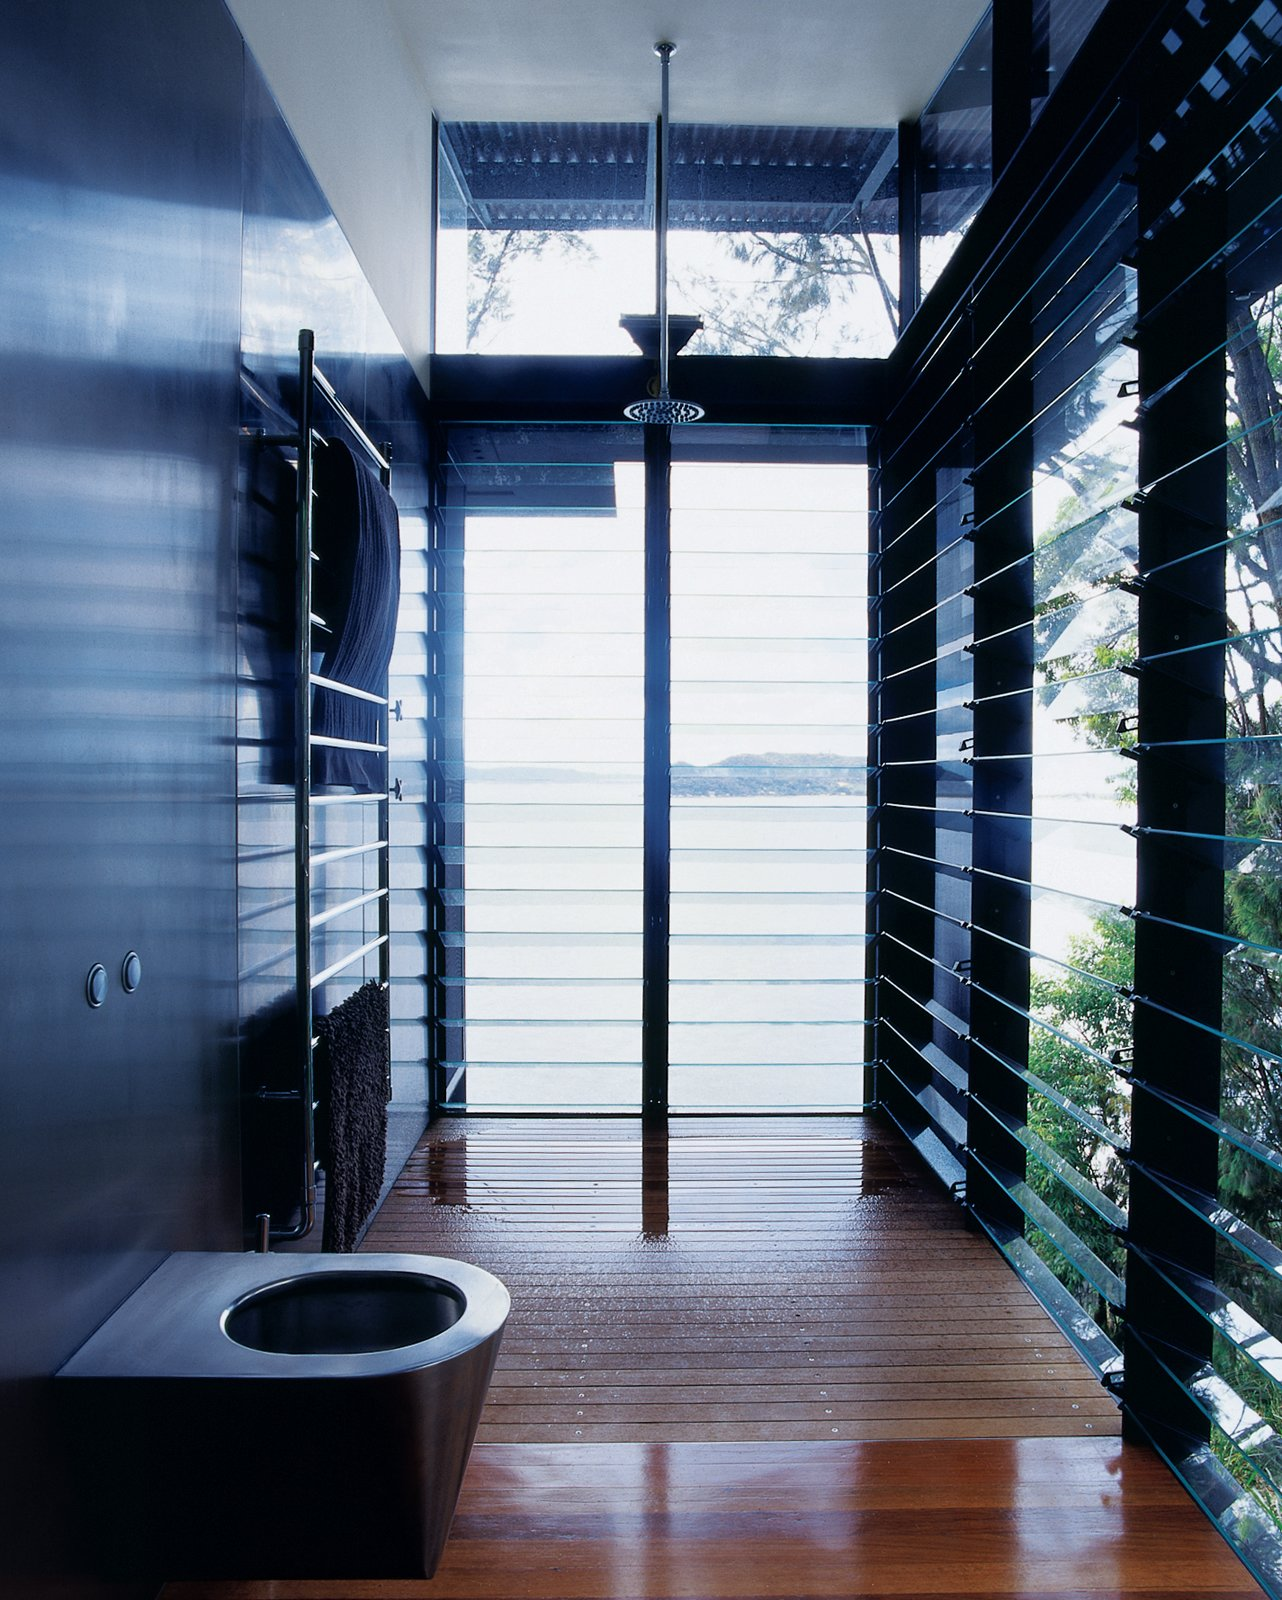 Bath, Medium Hardwood, and Open Even the master bath is open to the surrounding water.  Dwell's Favorite Bath Medium Hardwood Photos from Three Glass-and-Copper Pavilions Conquer the Cliffs